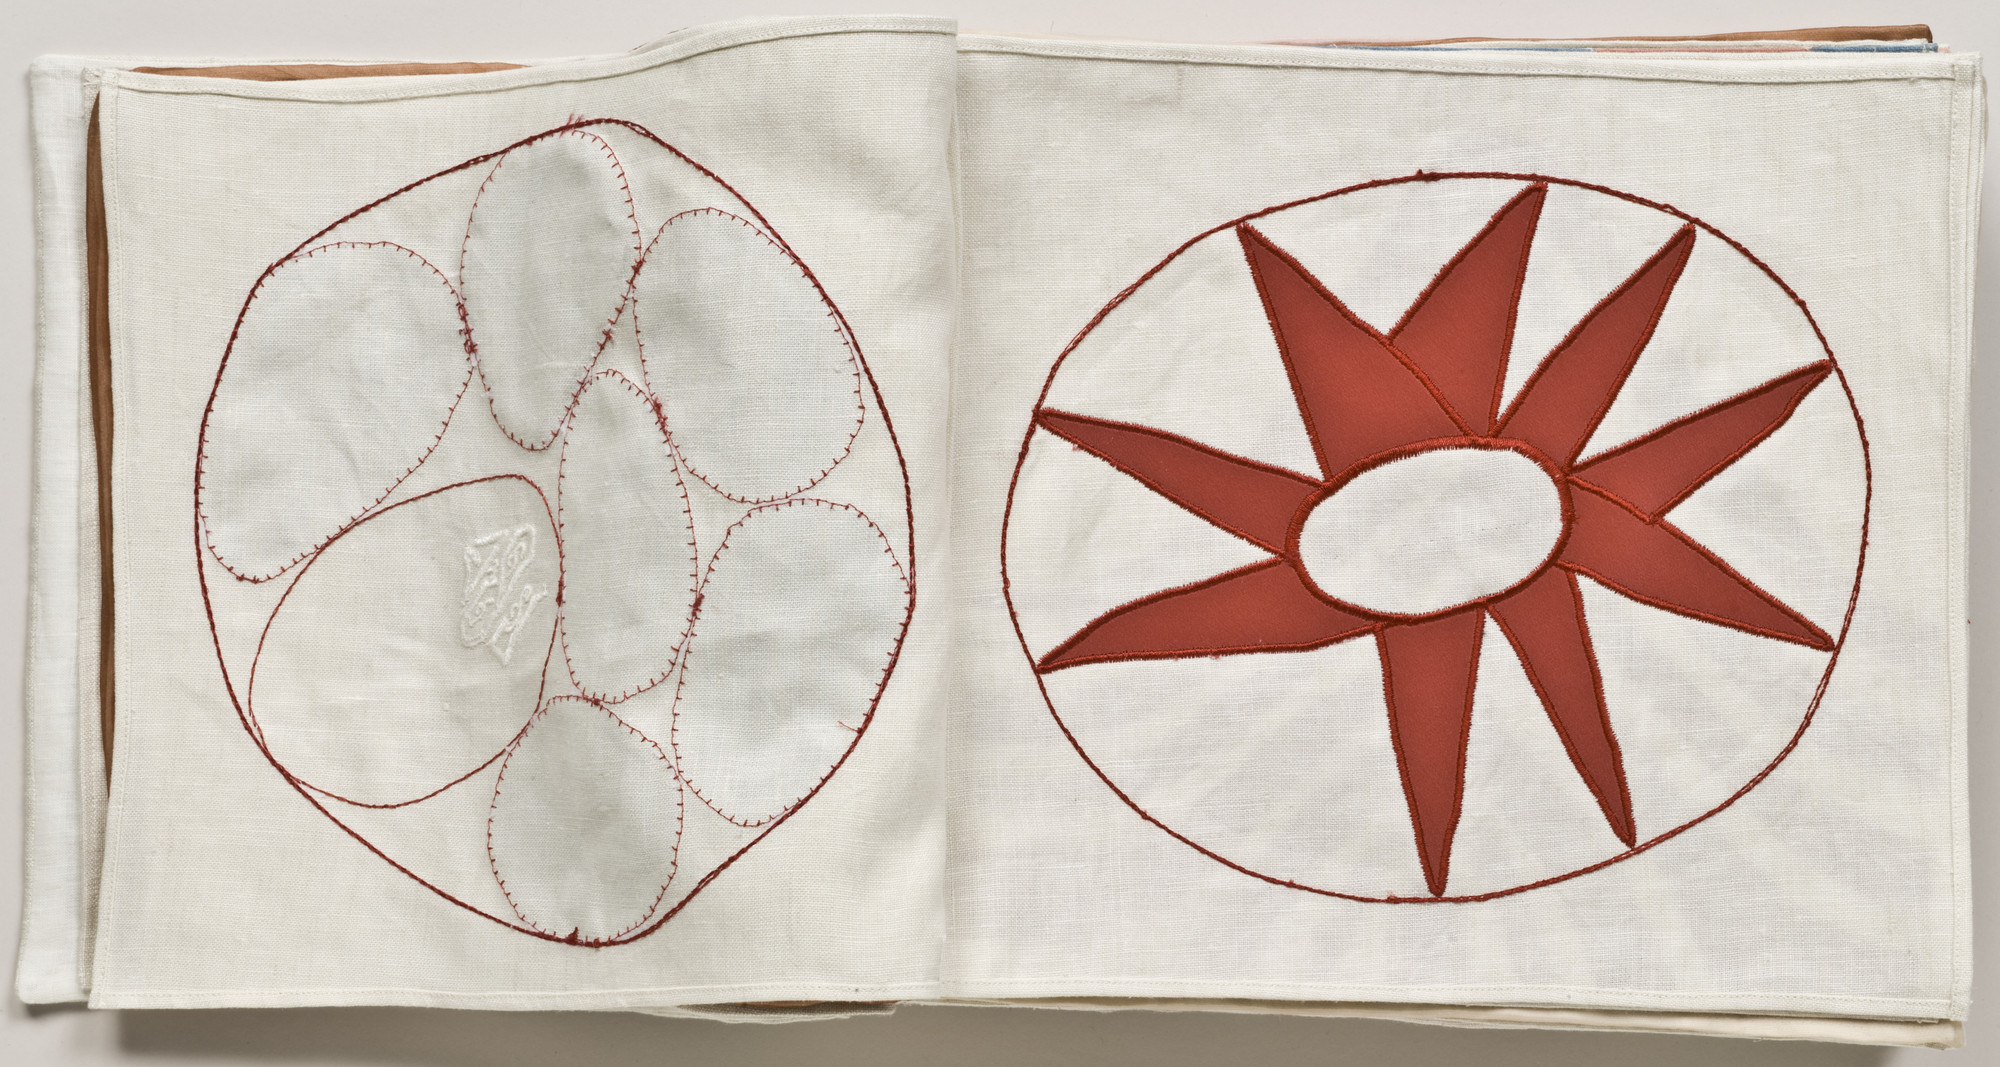 Louise Bourgeois. Untitled, no. 5 of 34, from the illustrated book, Ode à l'Oubli. 2004